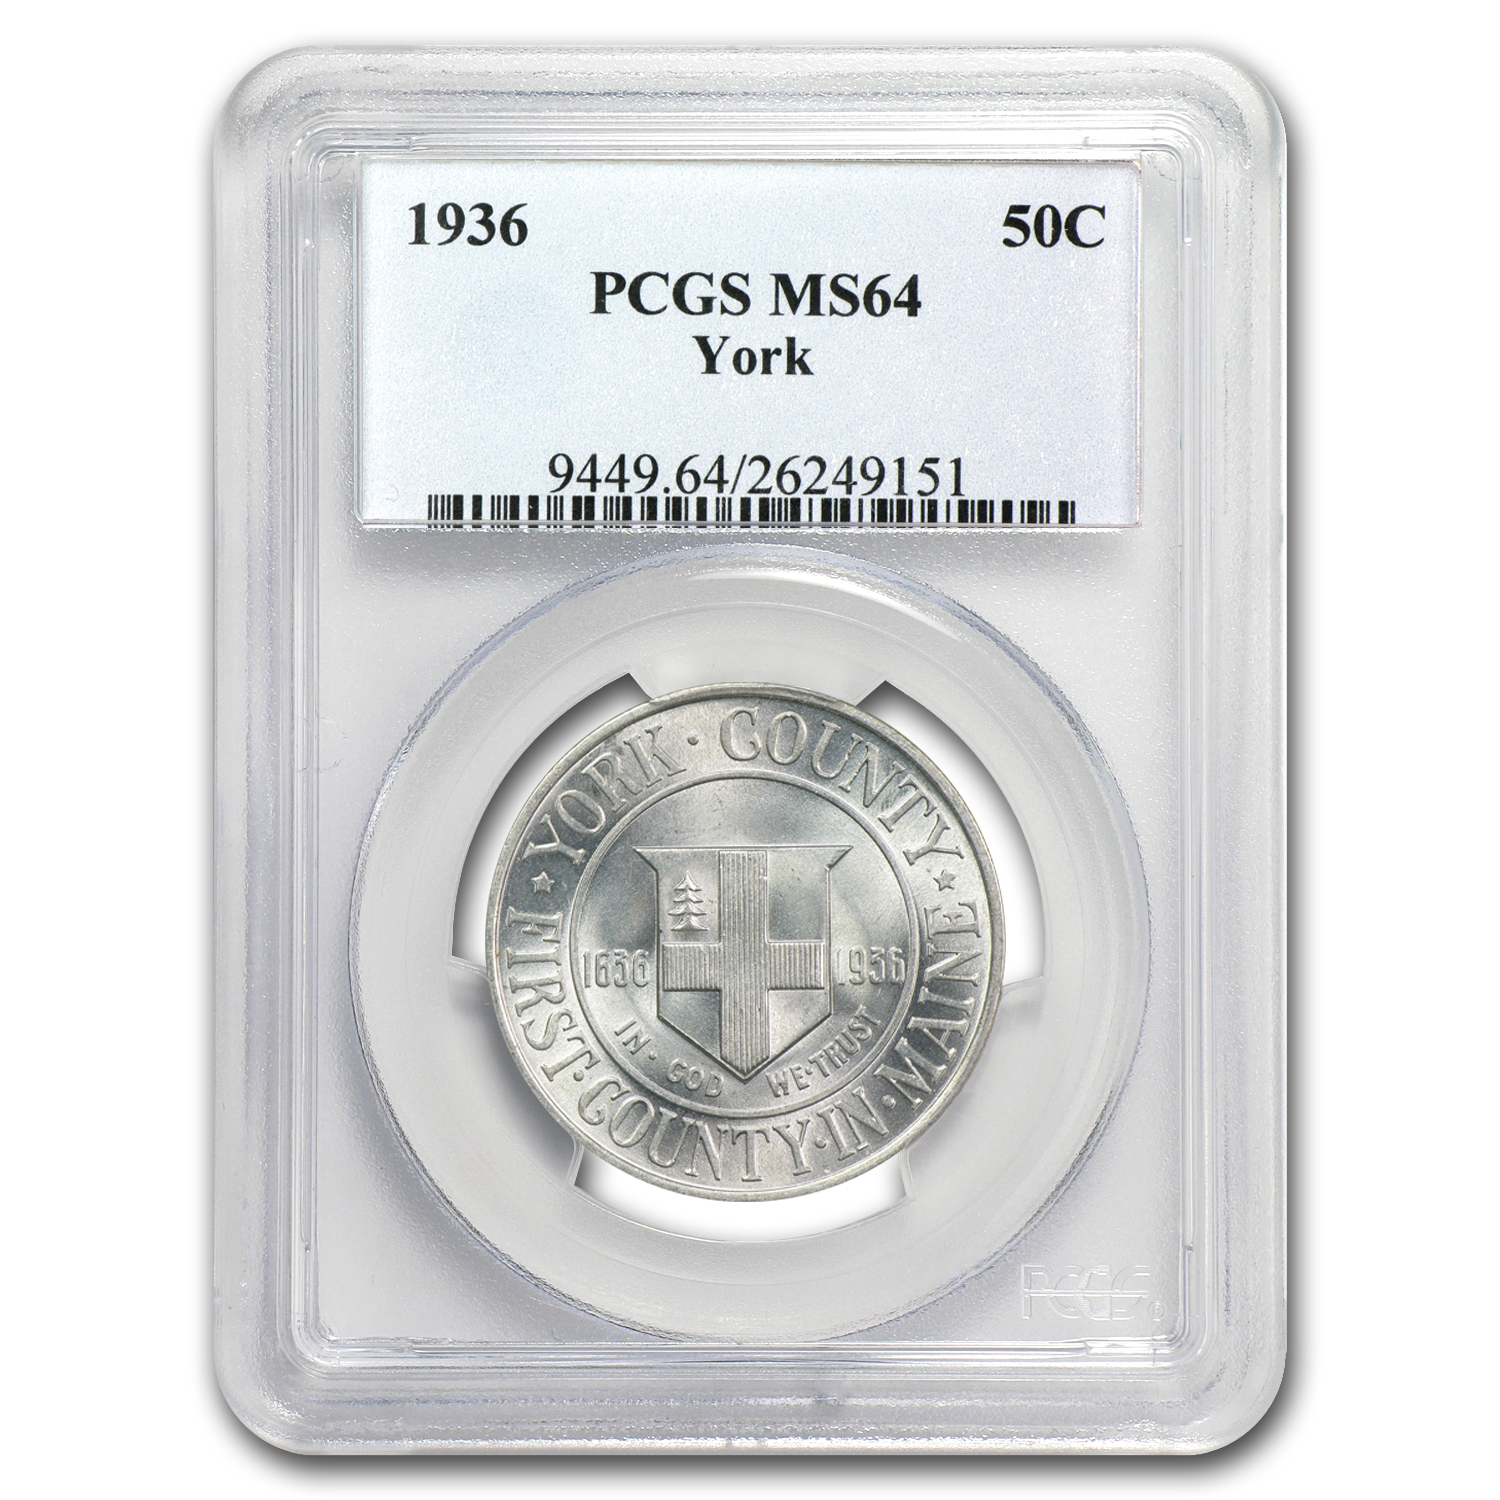 1936 York County, Maine MS-64 PCGS